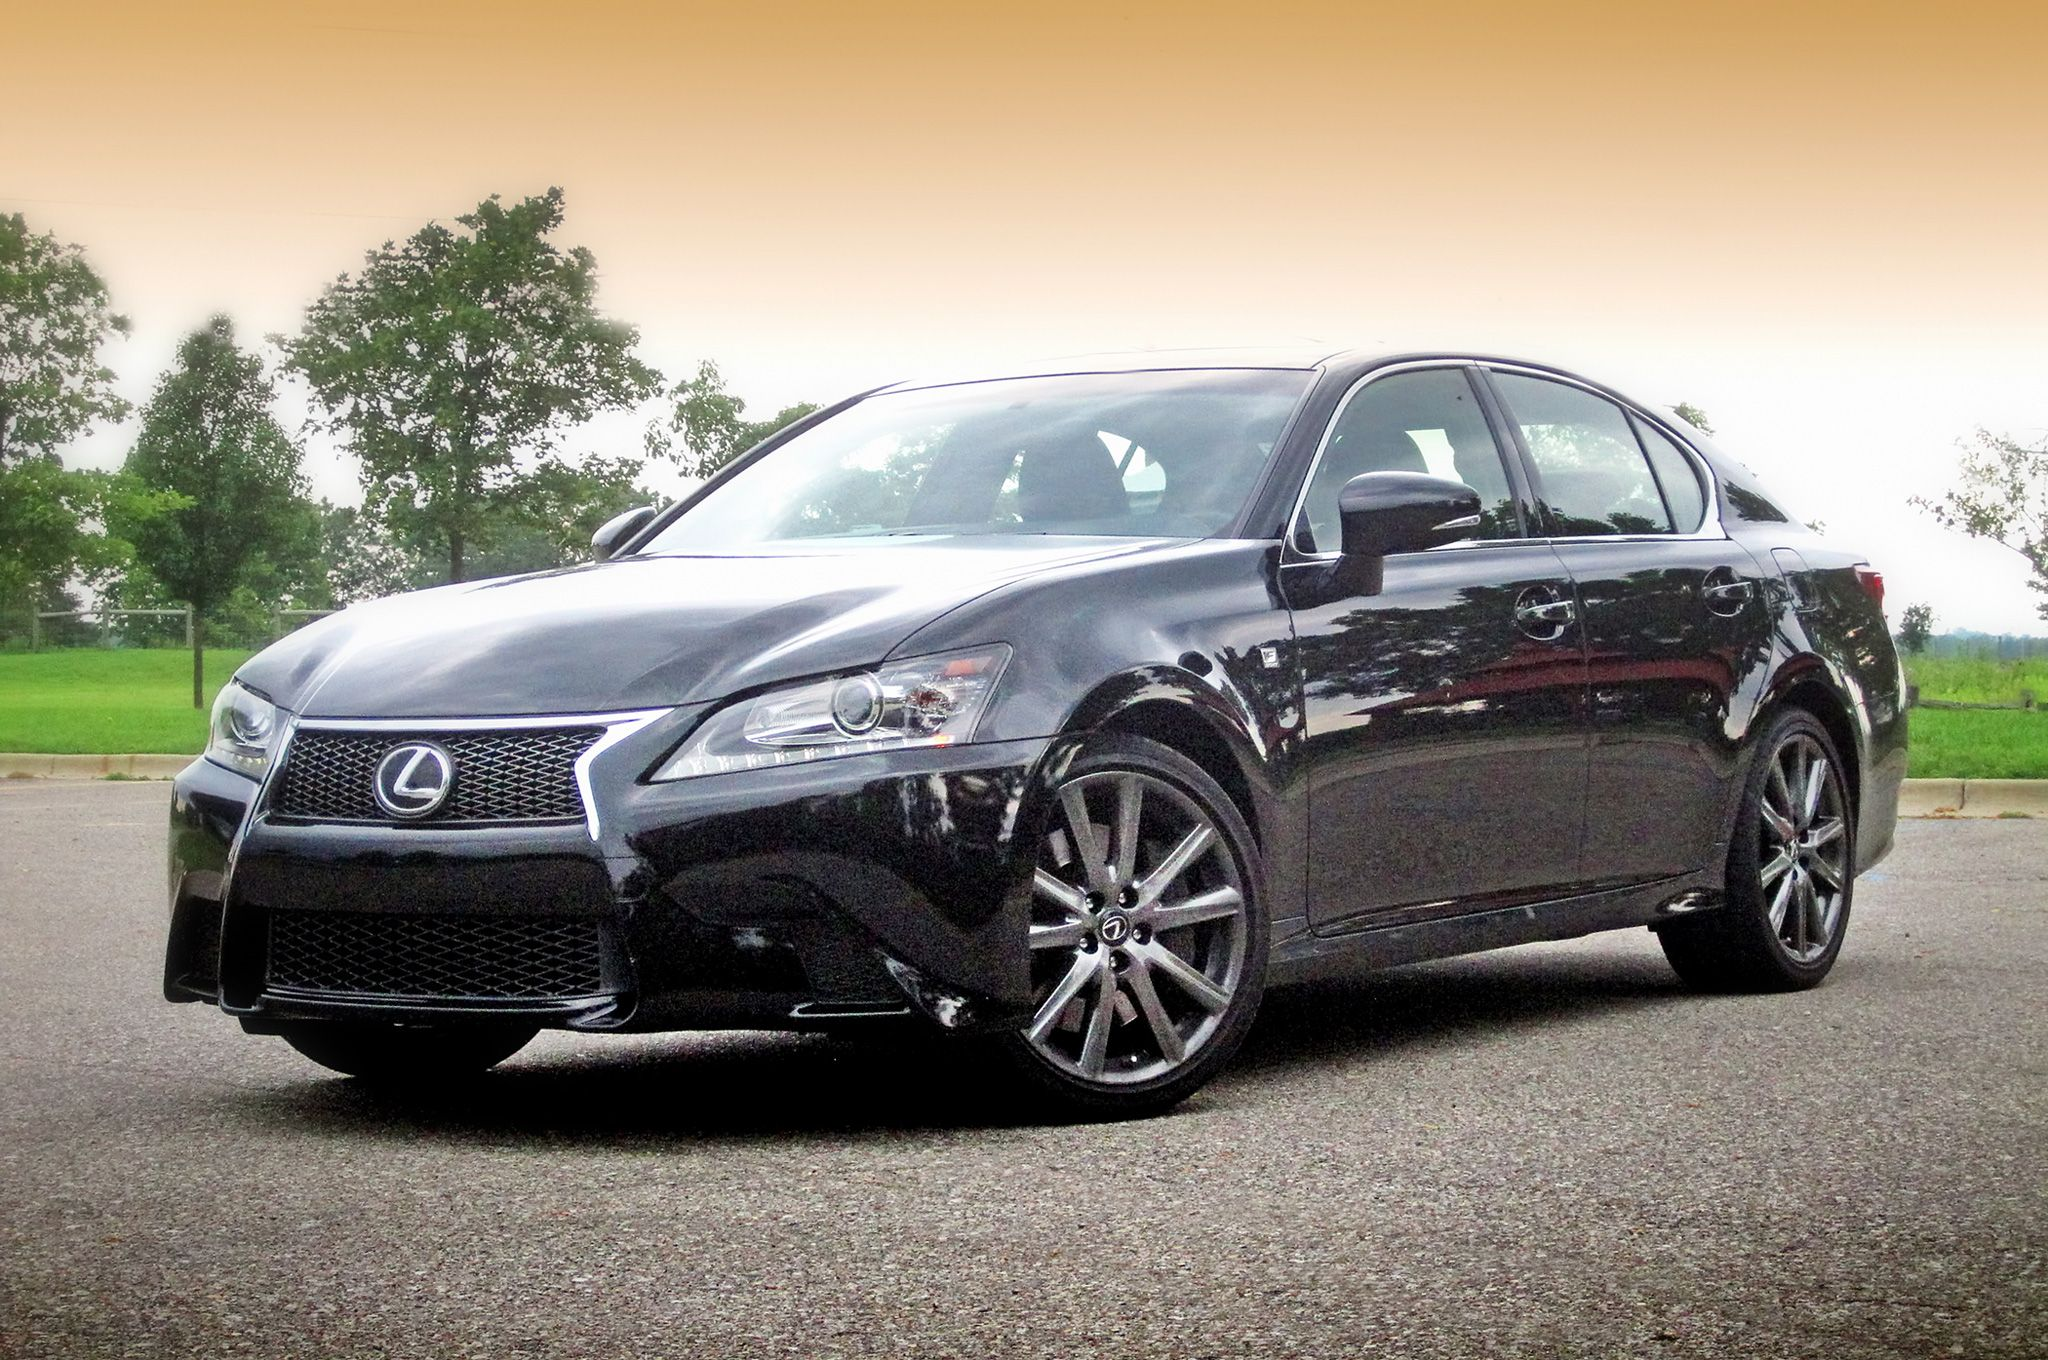 2014 lexus gs 350 f sport review and Price